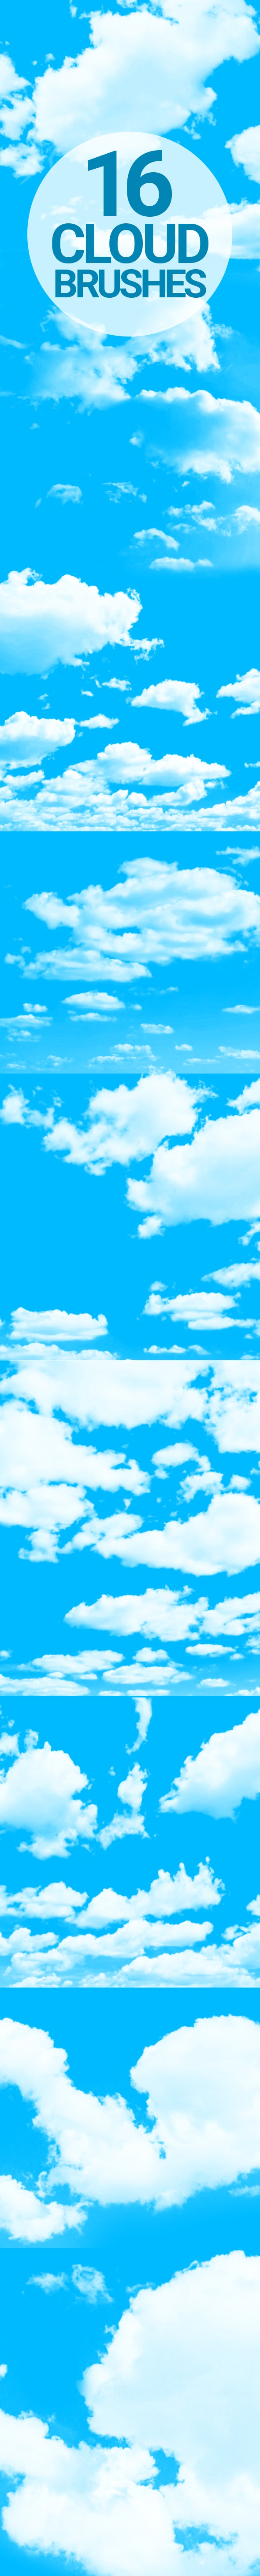 16 Cloud Brushes - Miscellaneous Brushes